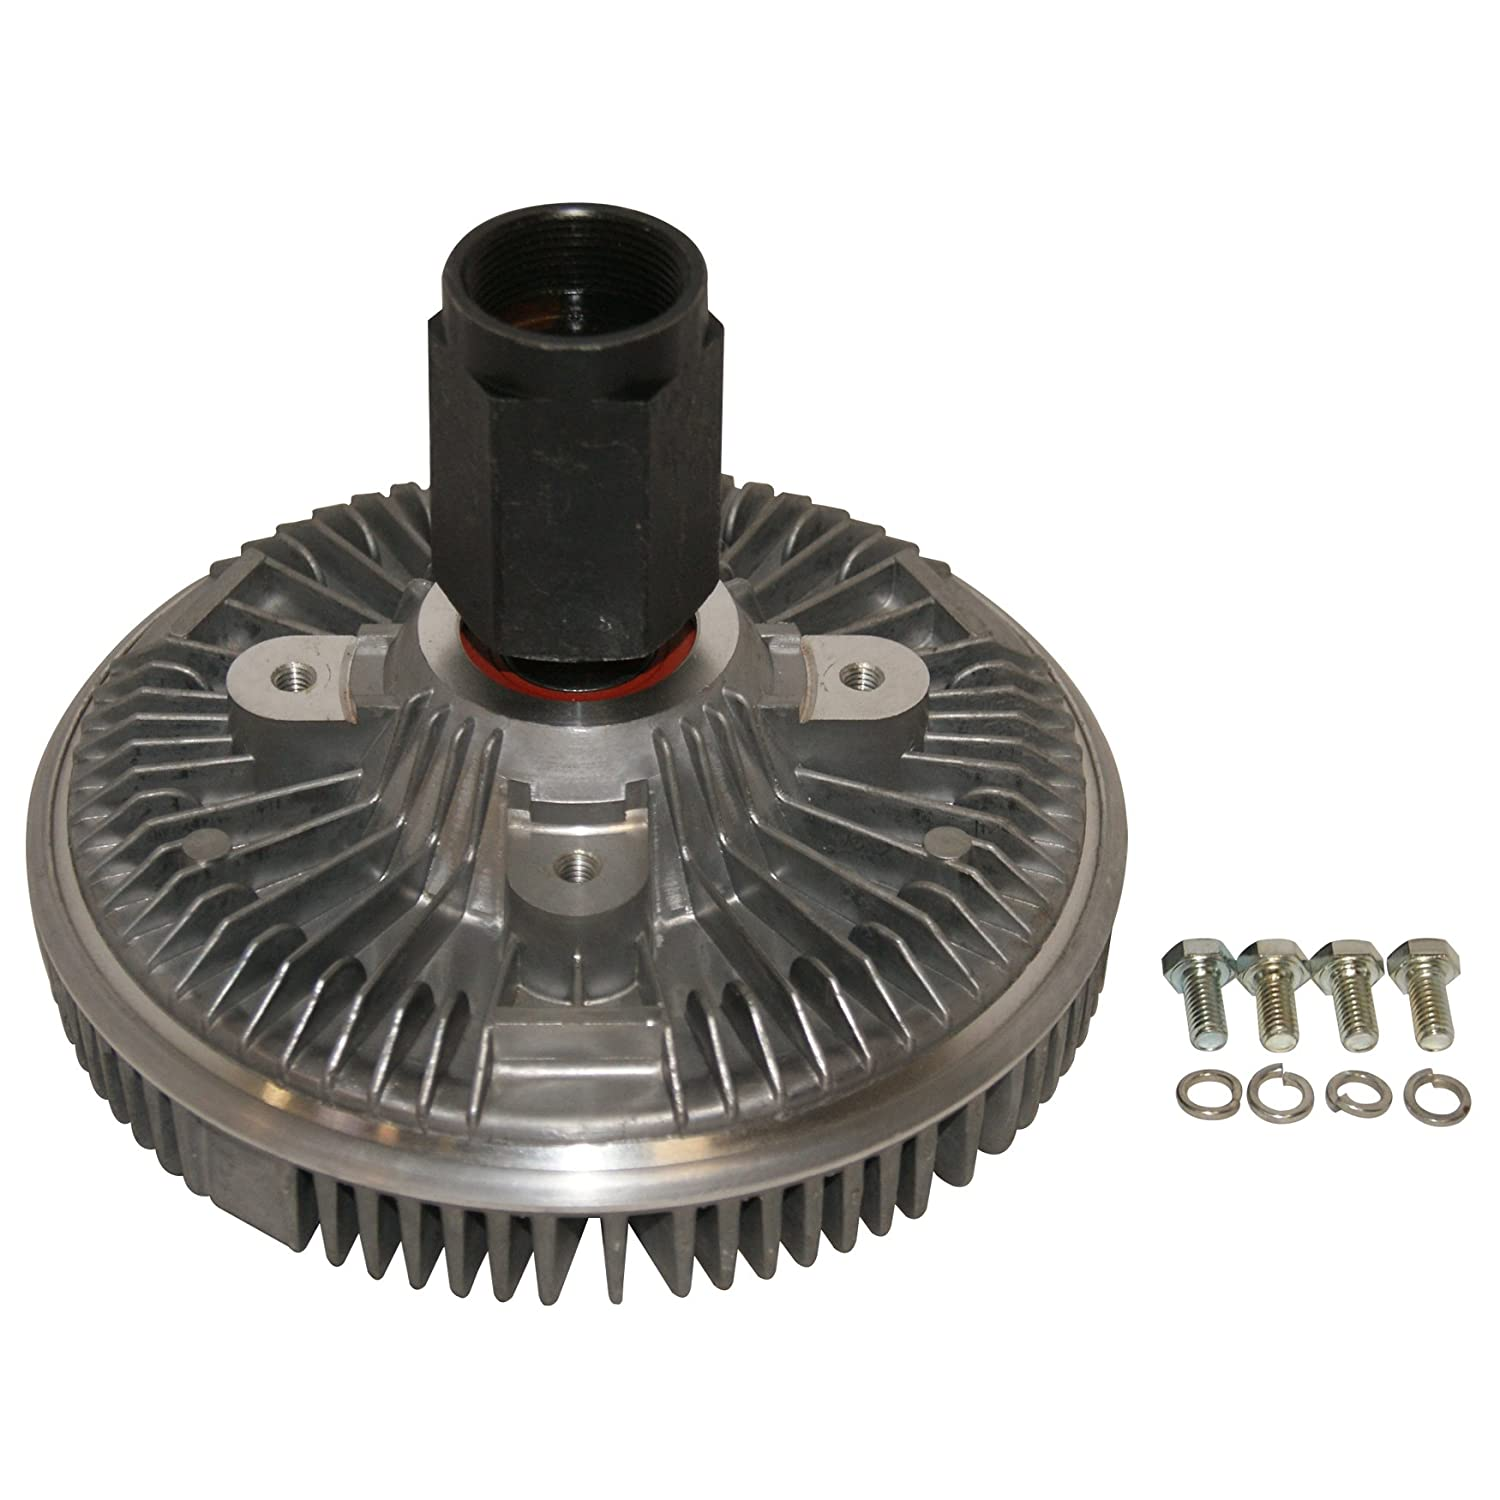 GMB 925-2410 Engine Cooling Fan Clutch 9252410